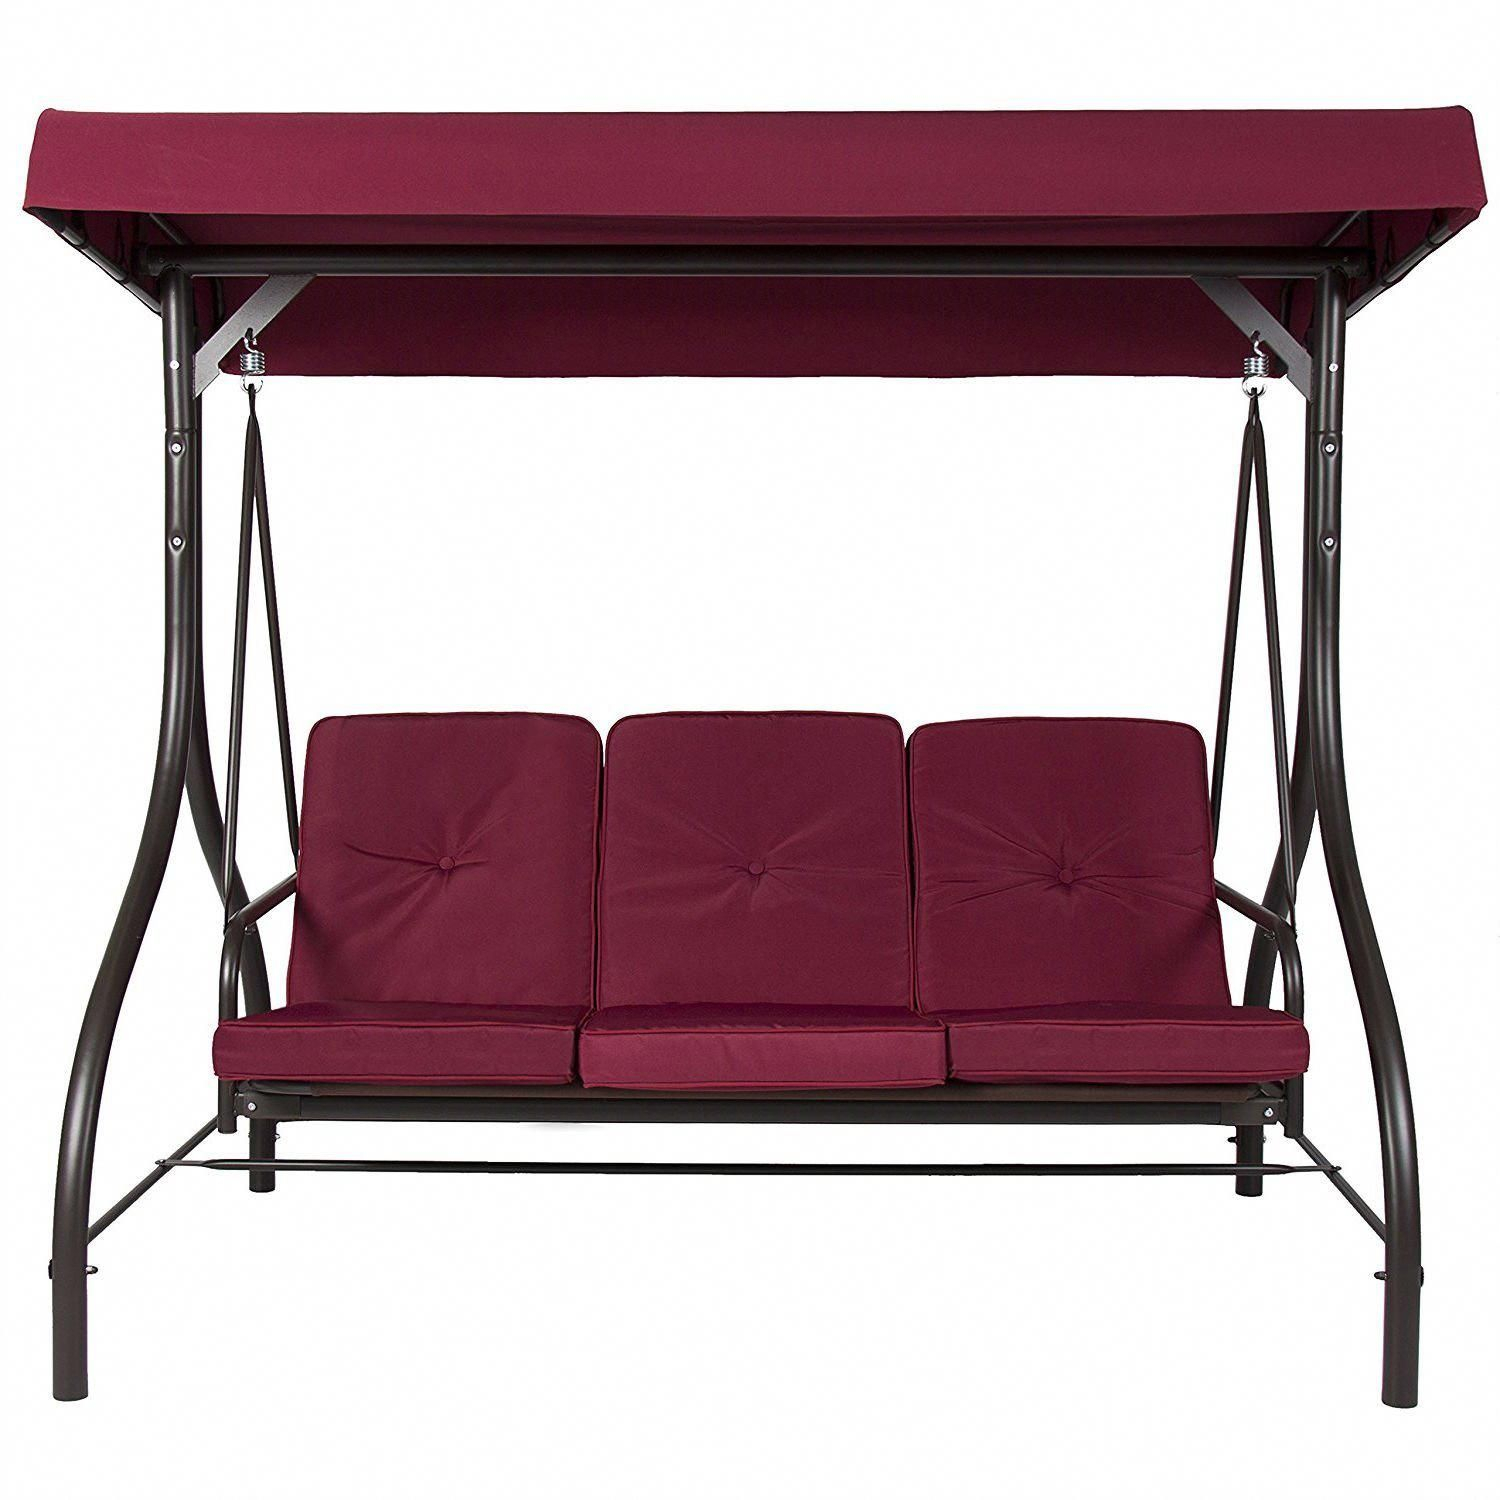 Burgundy Outdoor Patio Deck Porch Canopy Swing With Cushions Throughout Porch Swings With Canopy (View 8 of 25)